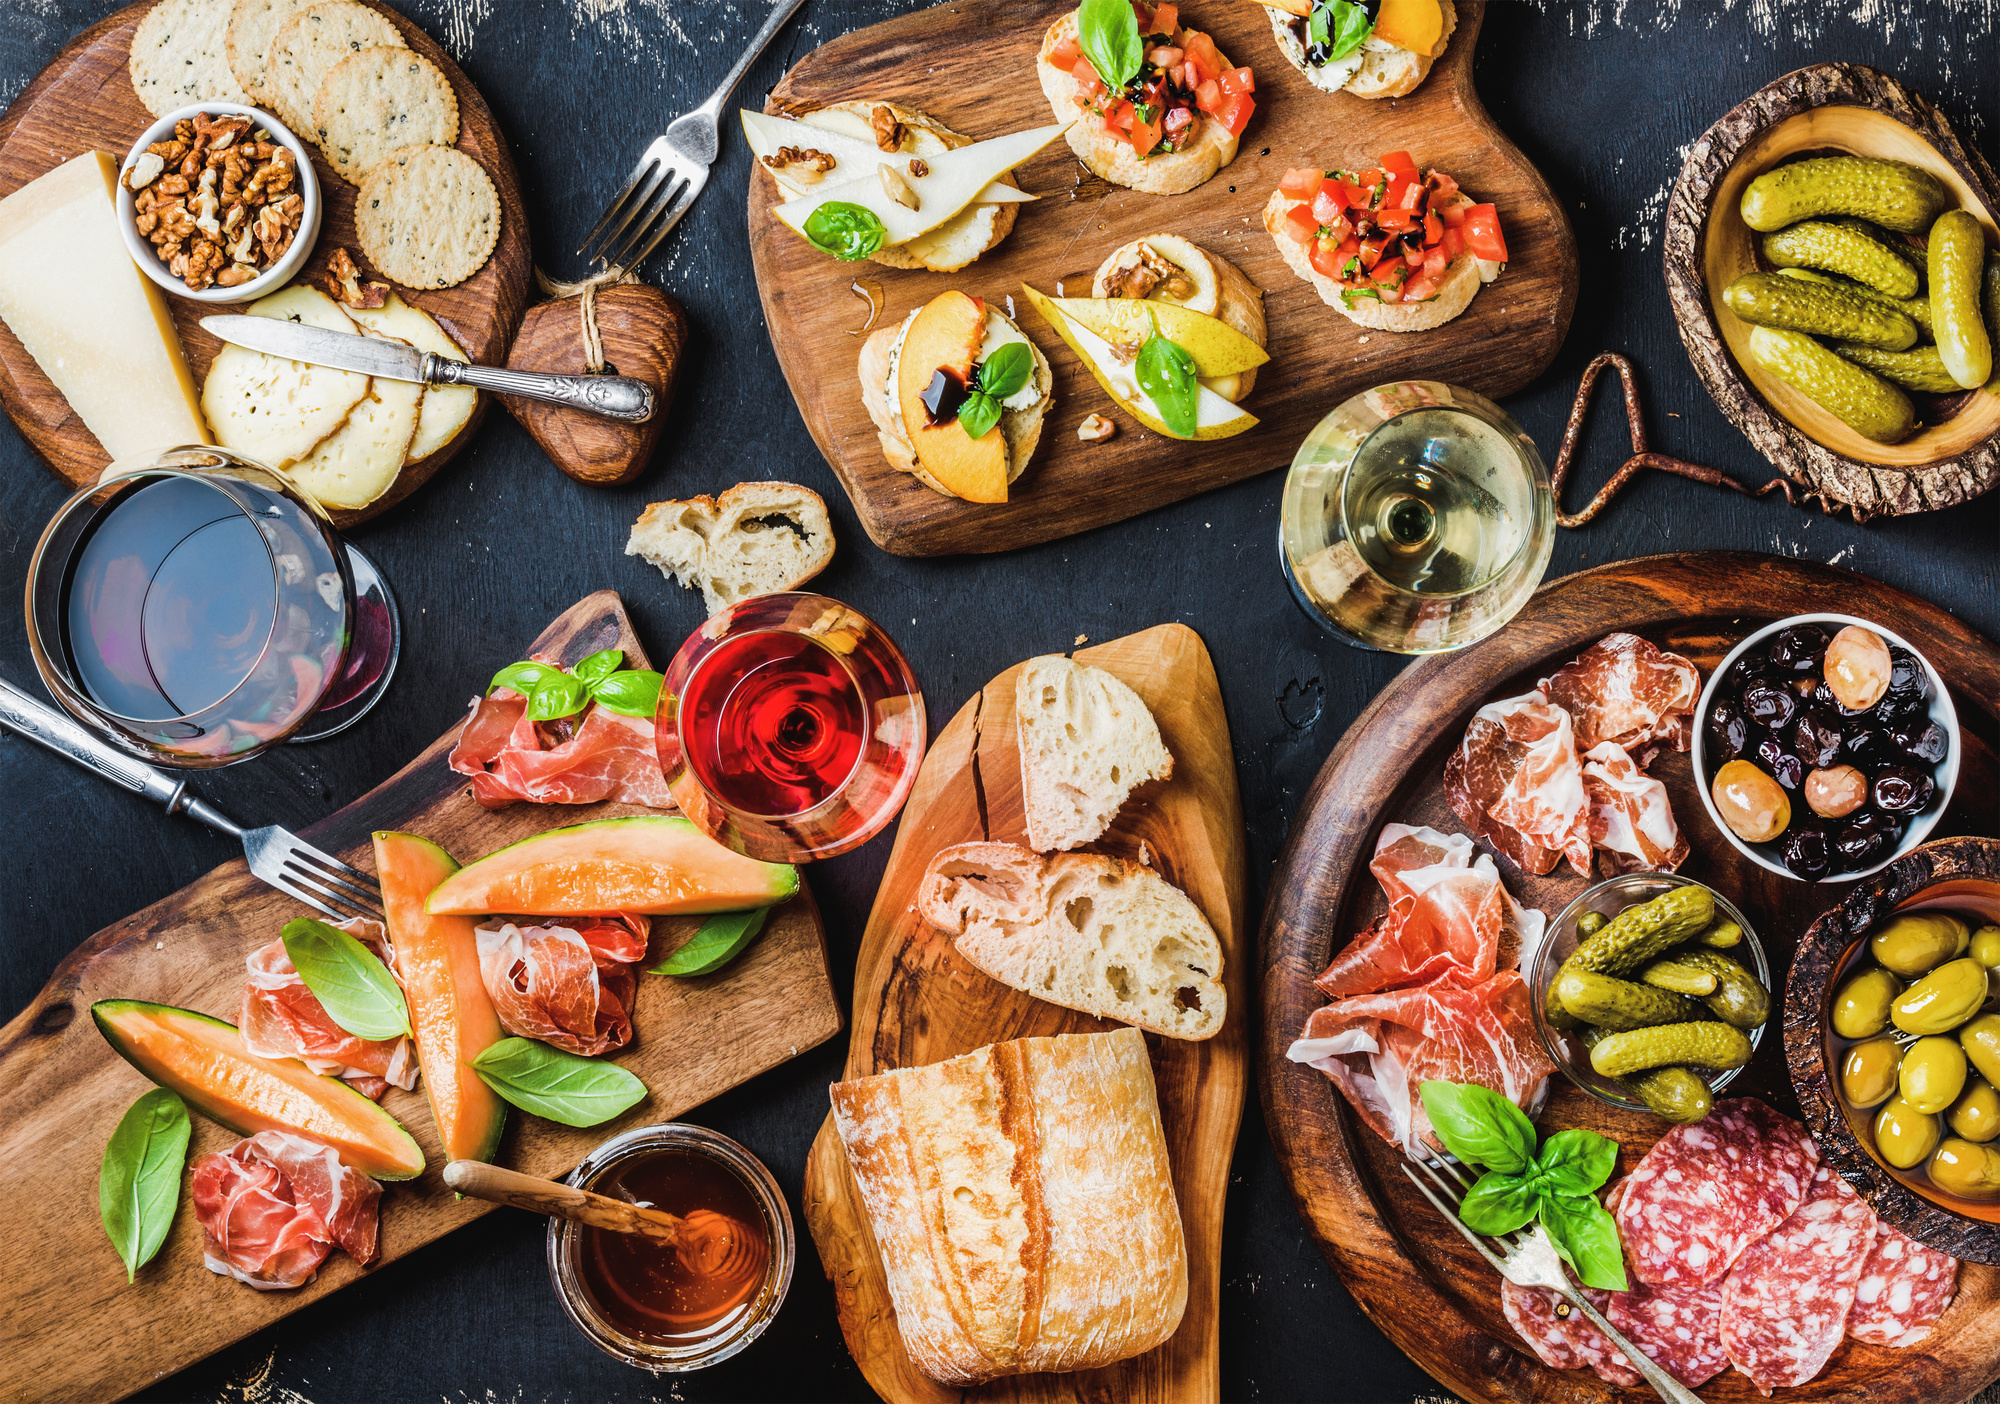 7 Tips for Eating a Variety of Foods - Hosbeg.com